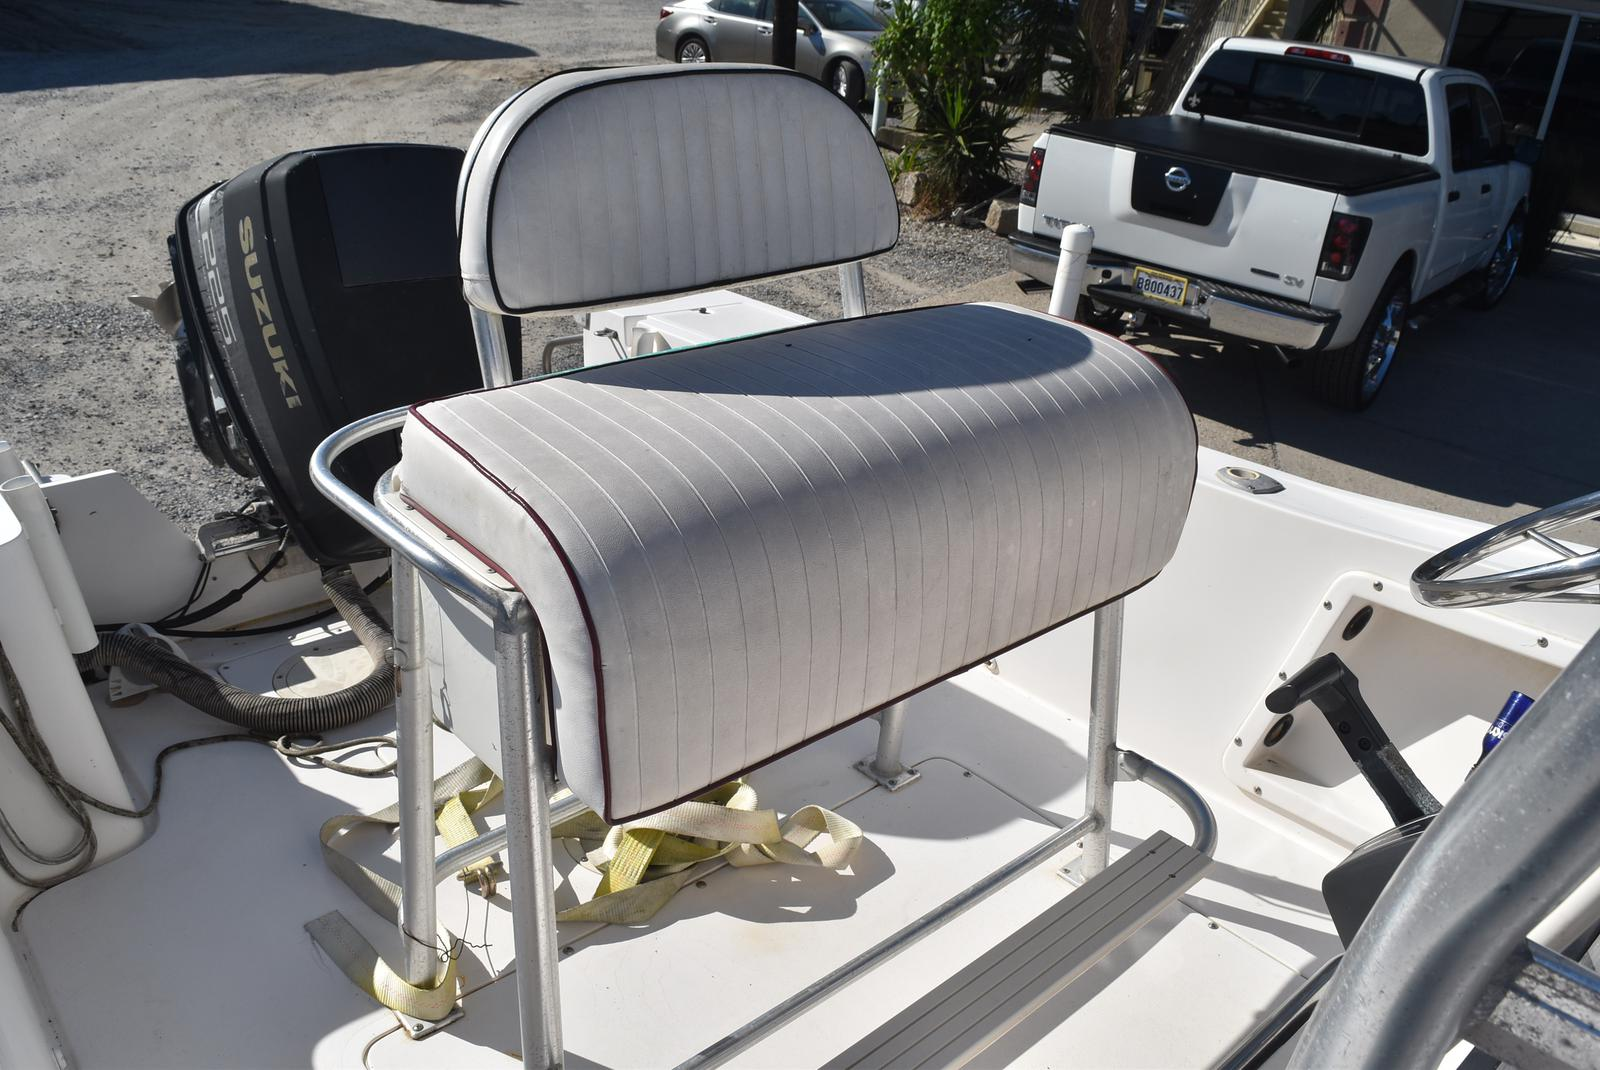 1996 Mako boat for sale, model of the boat is 22 Mako & Image # 25 of 26